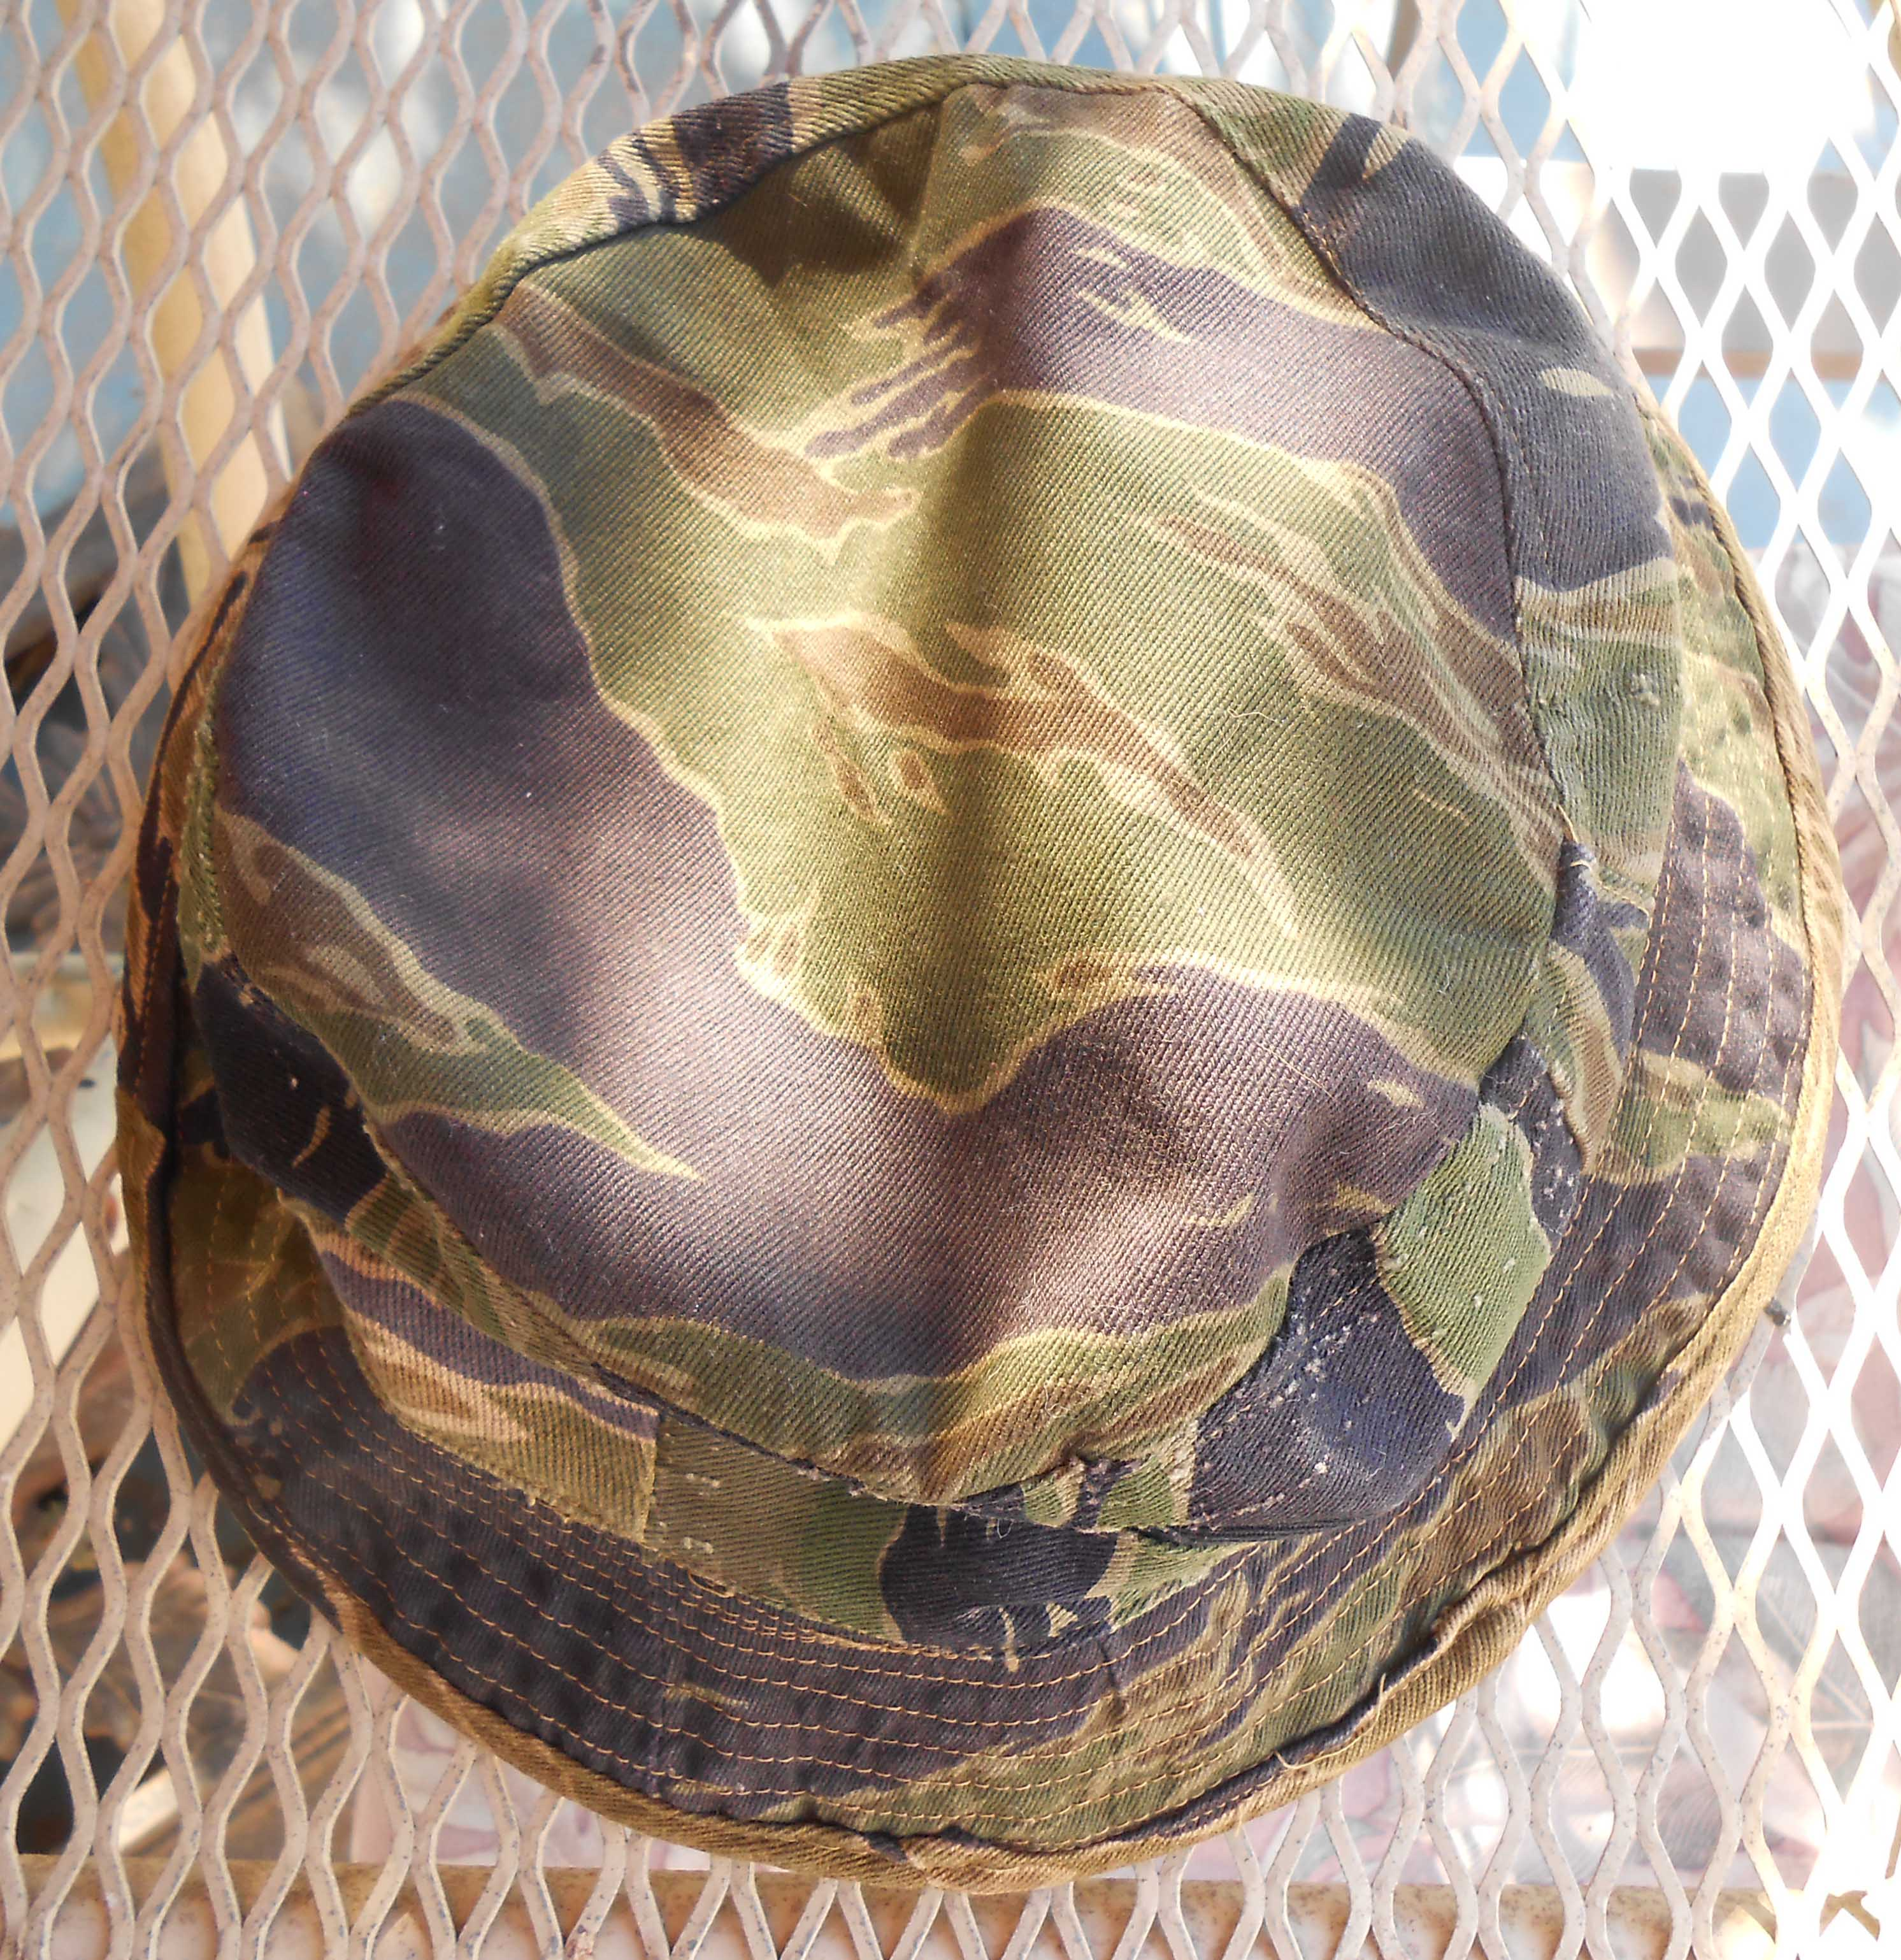 47439b50 Vietnamese made short brim tiger boonie. The body of this hat is made out  of at least four different patterns of tiger stripe, including both  patterns of ...